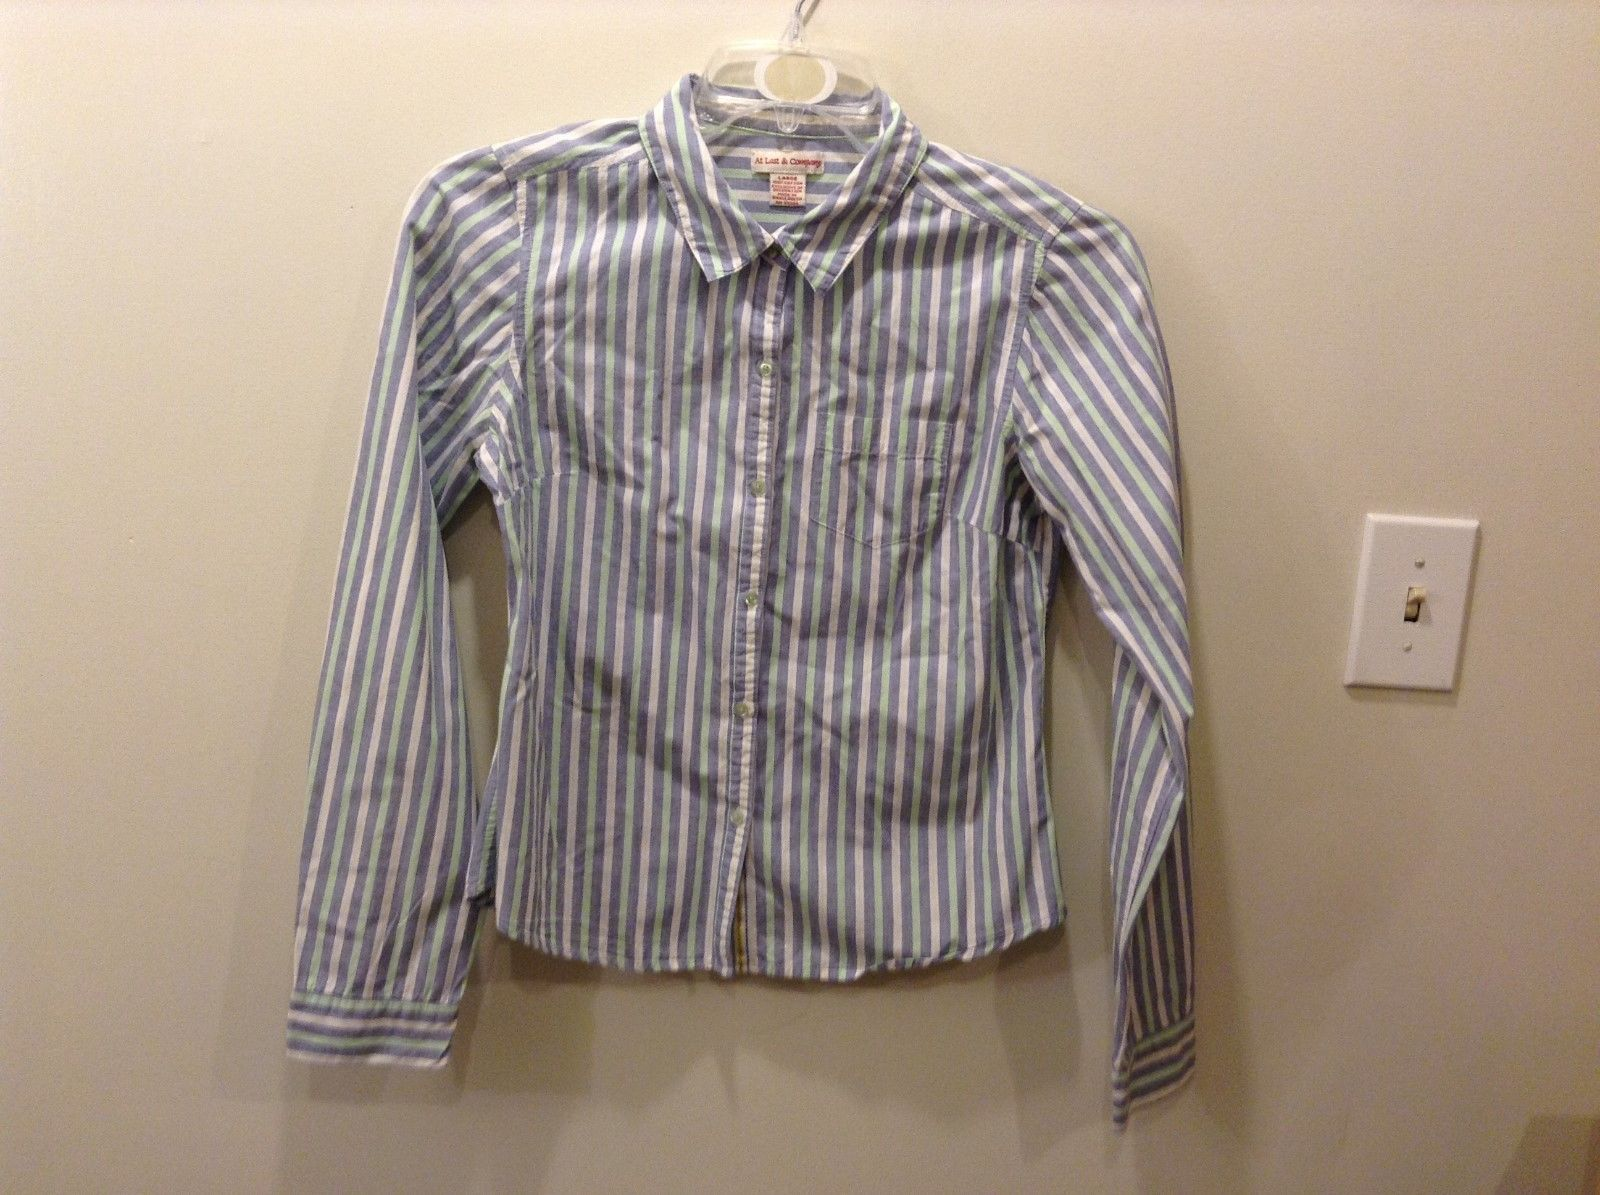 At Last & Company Vertical Multi-Striped Button Up Shirt Size Large